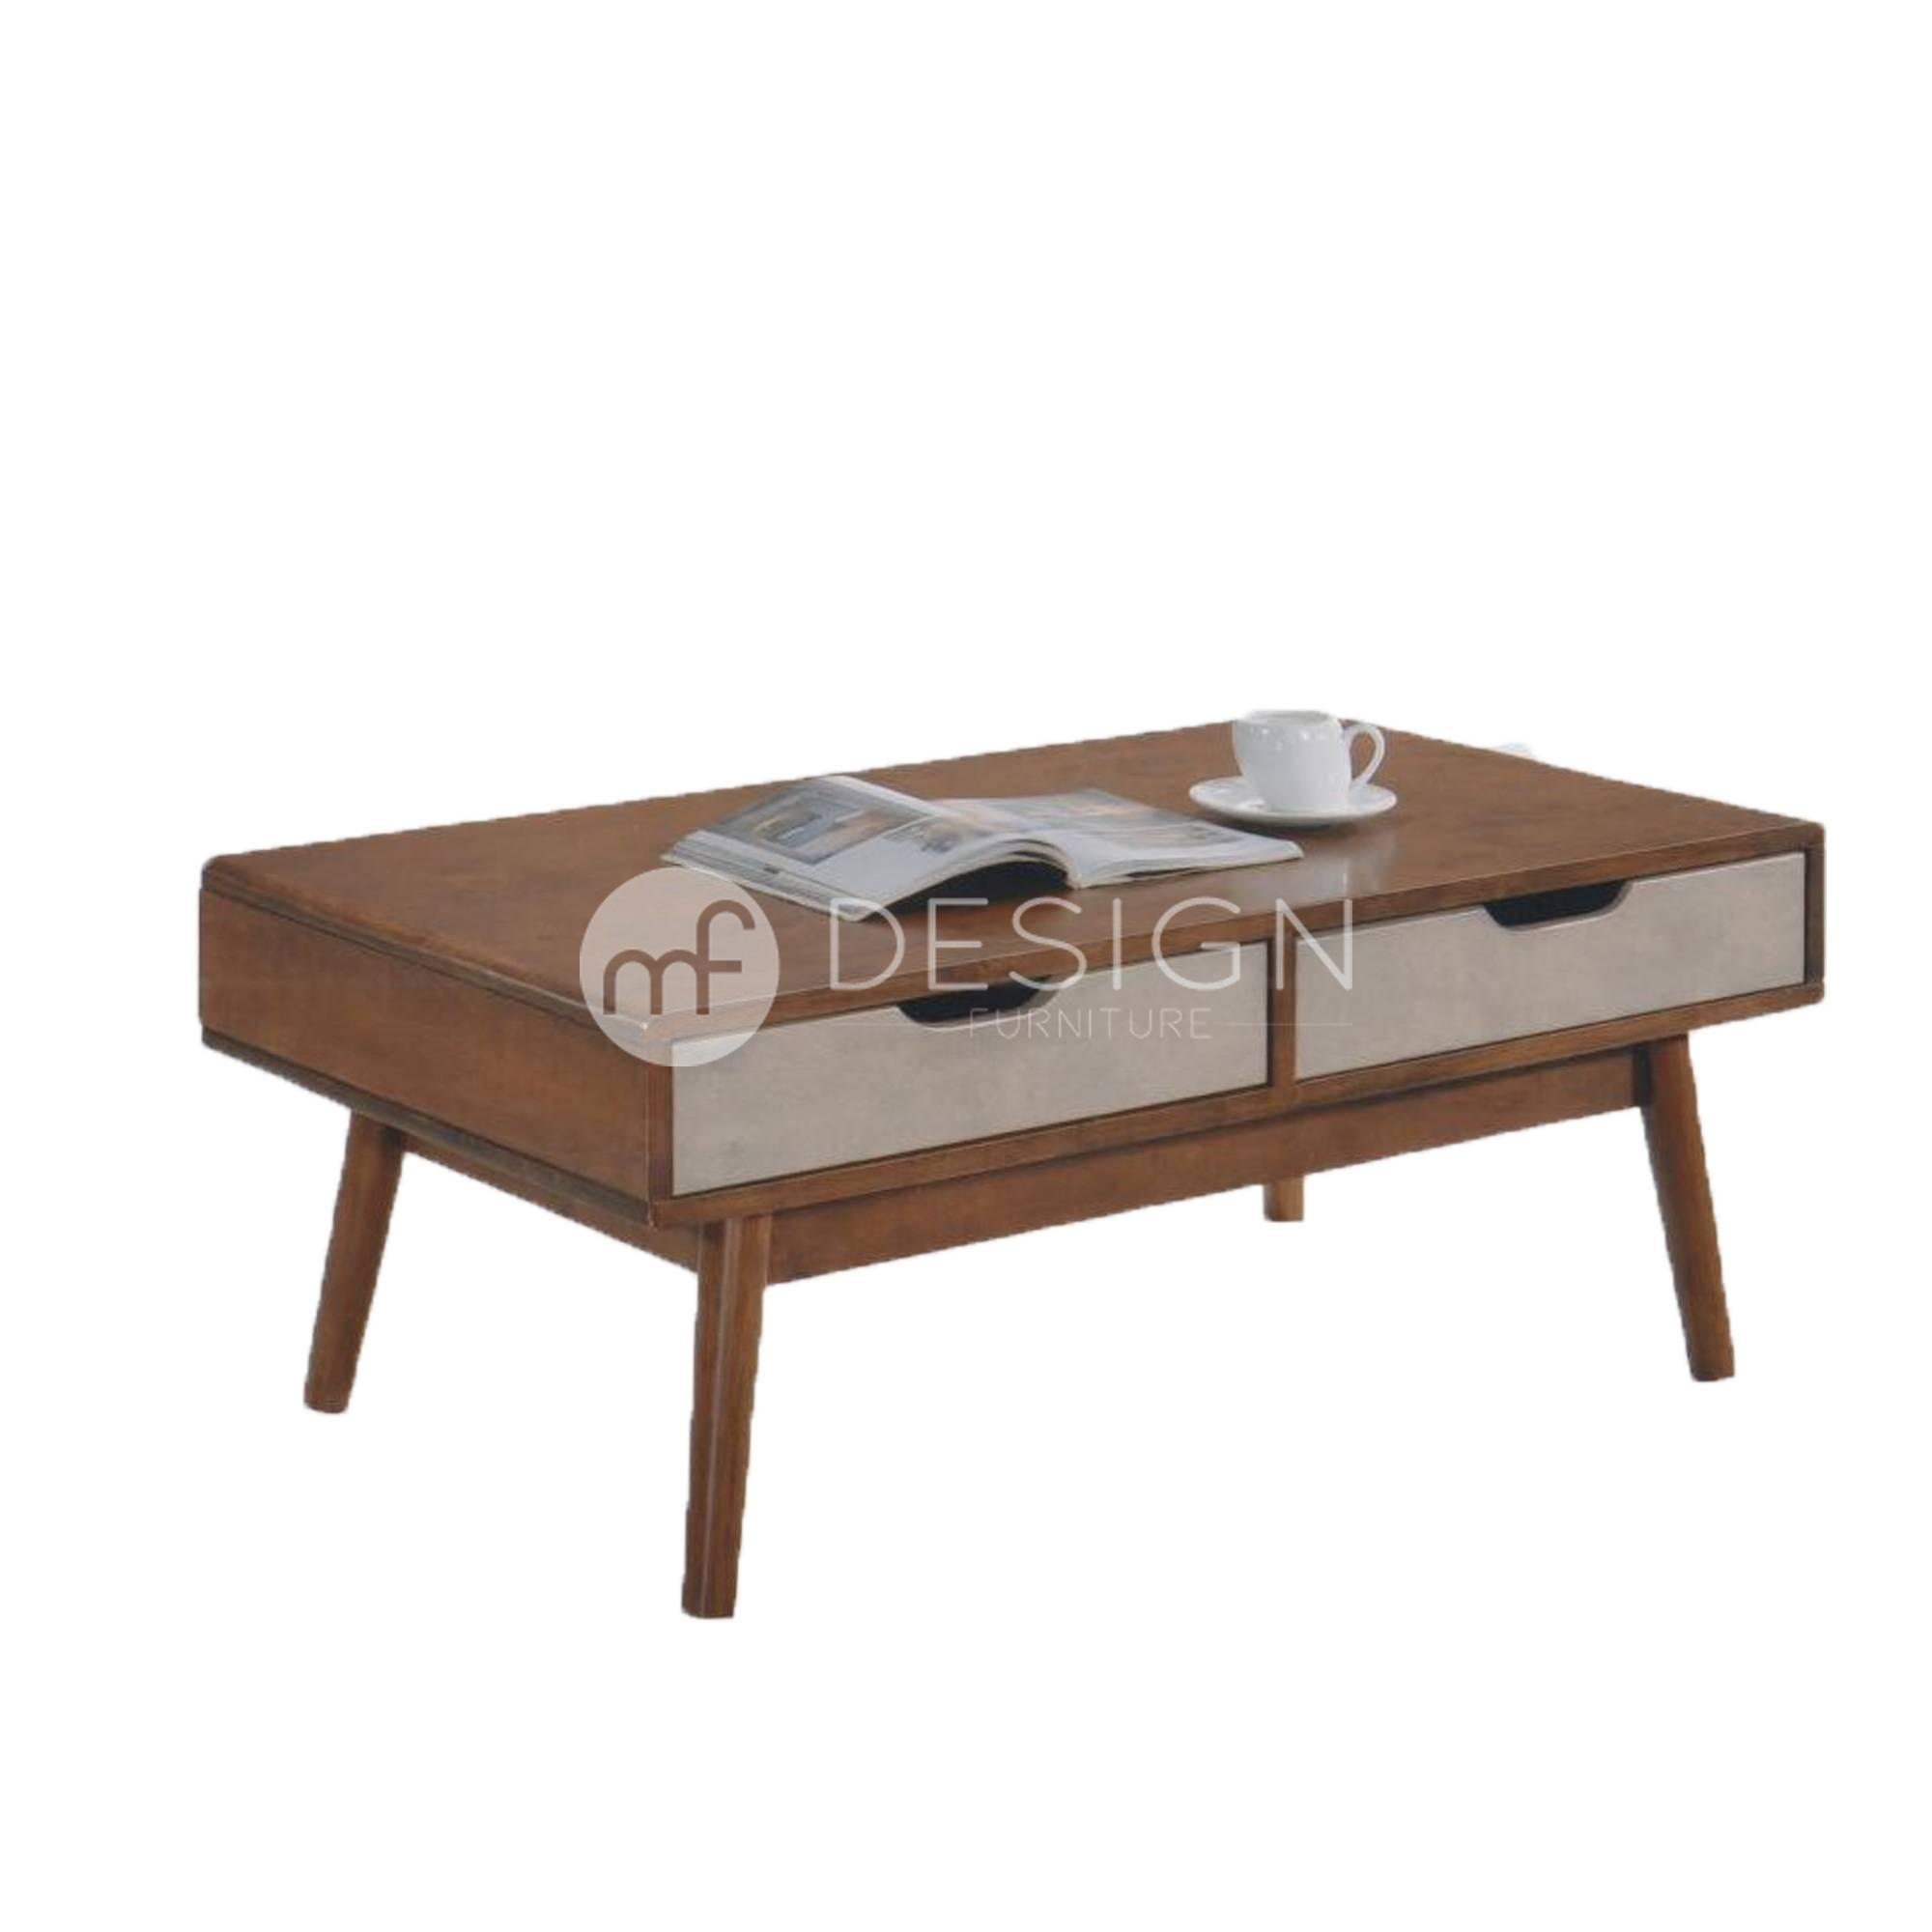 Mf Design Noli Coffee Table Scandinavian Style